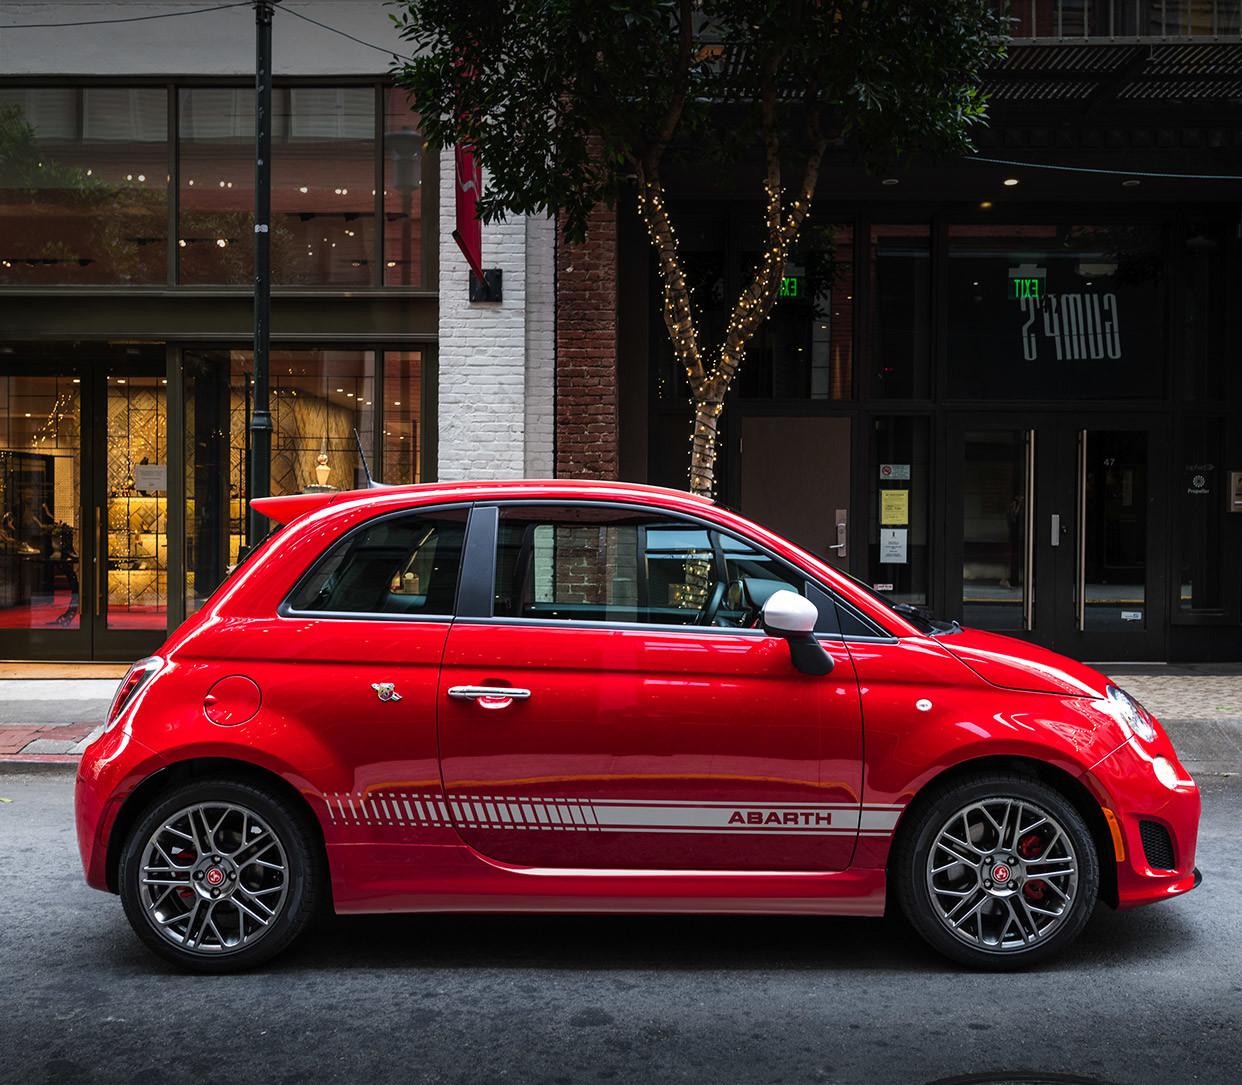 Red 2019 FIAT® 500 parked on the street in a city.